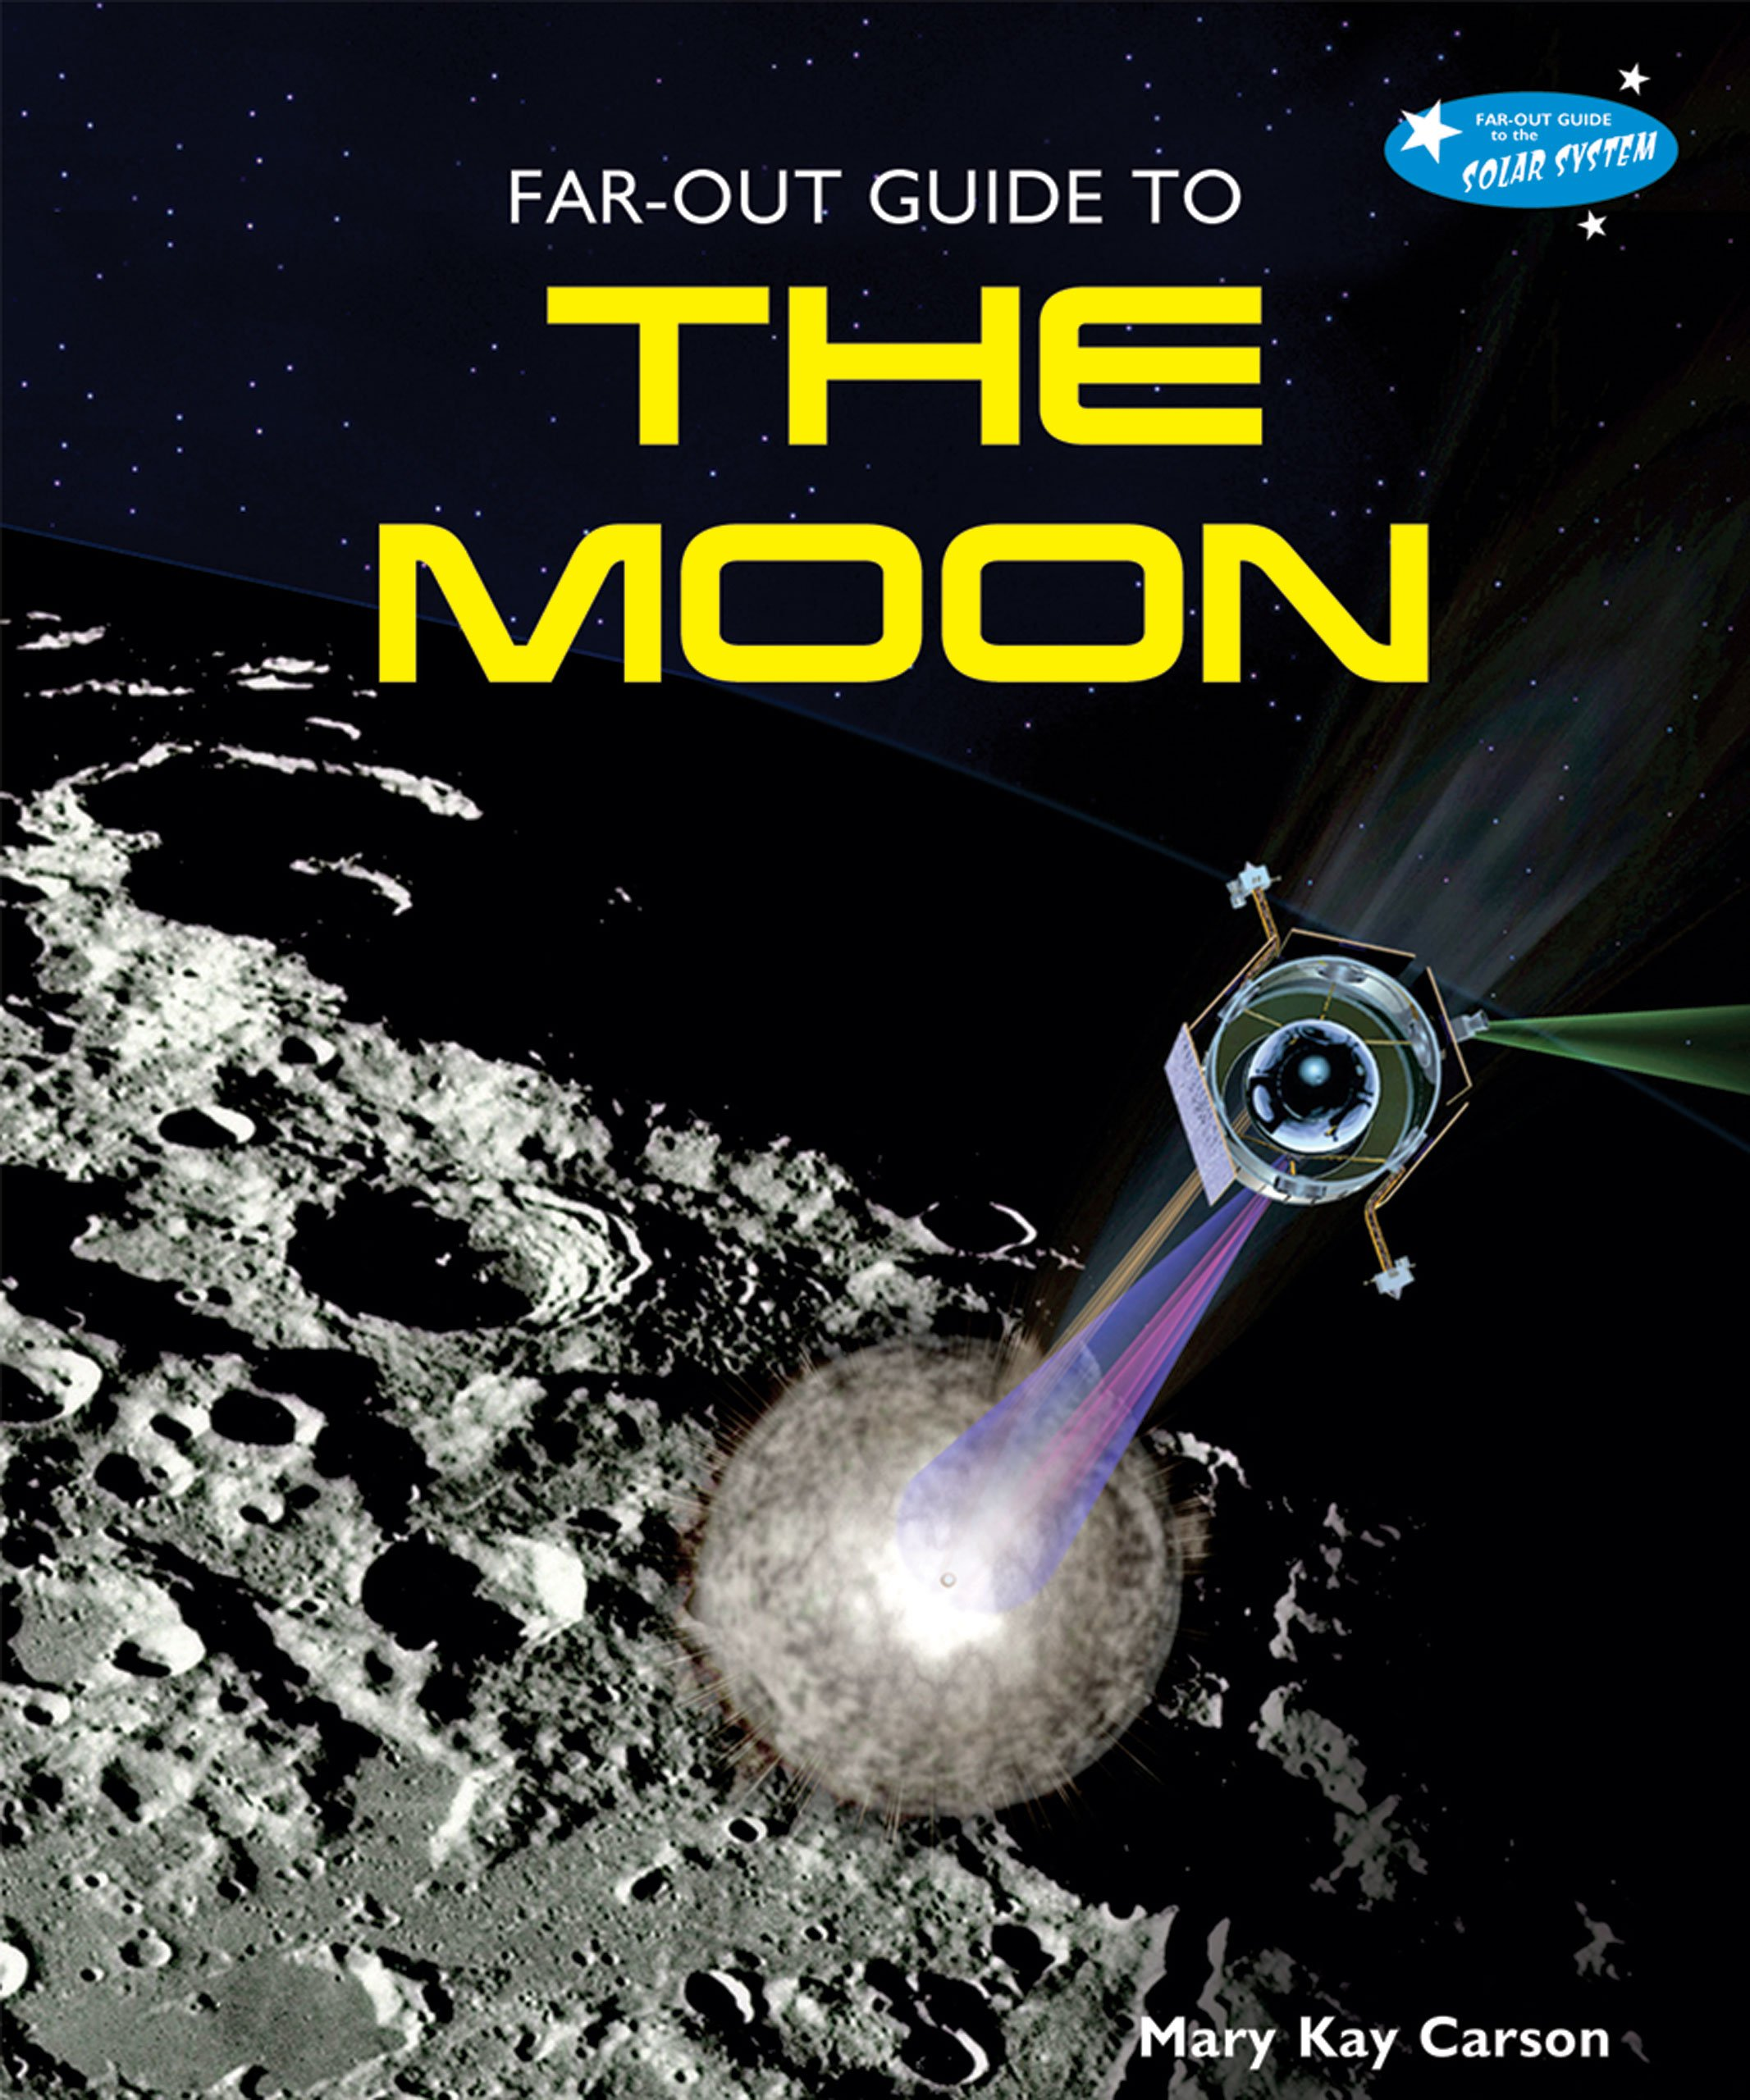 Far-Out Guide to the Moon (Far-Out Guide to the Solar System) ebook